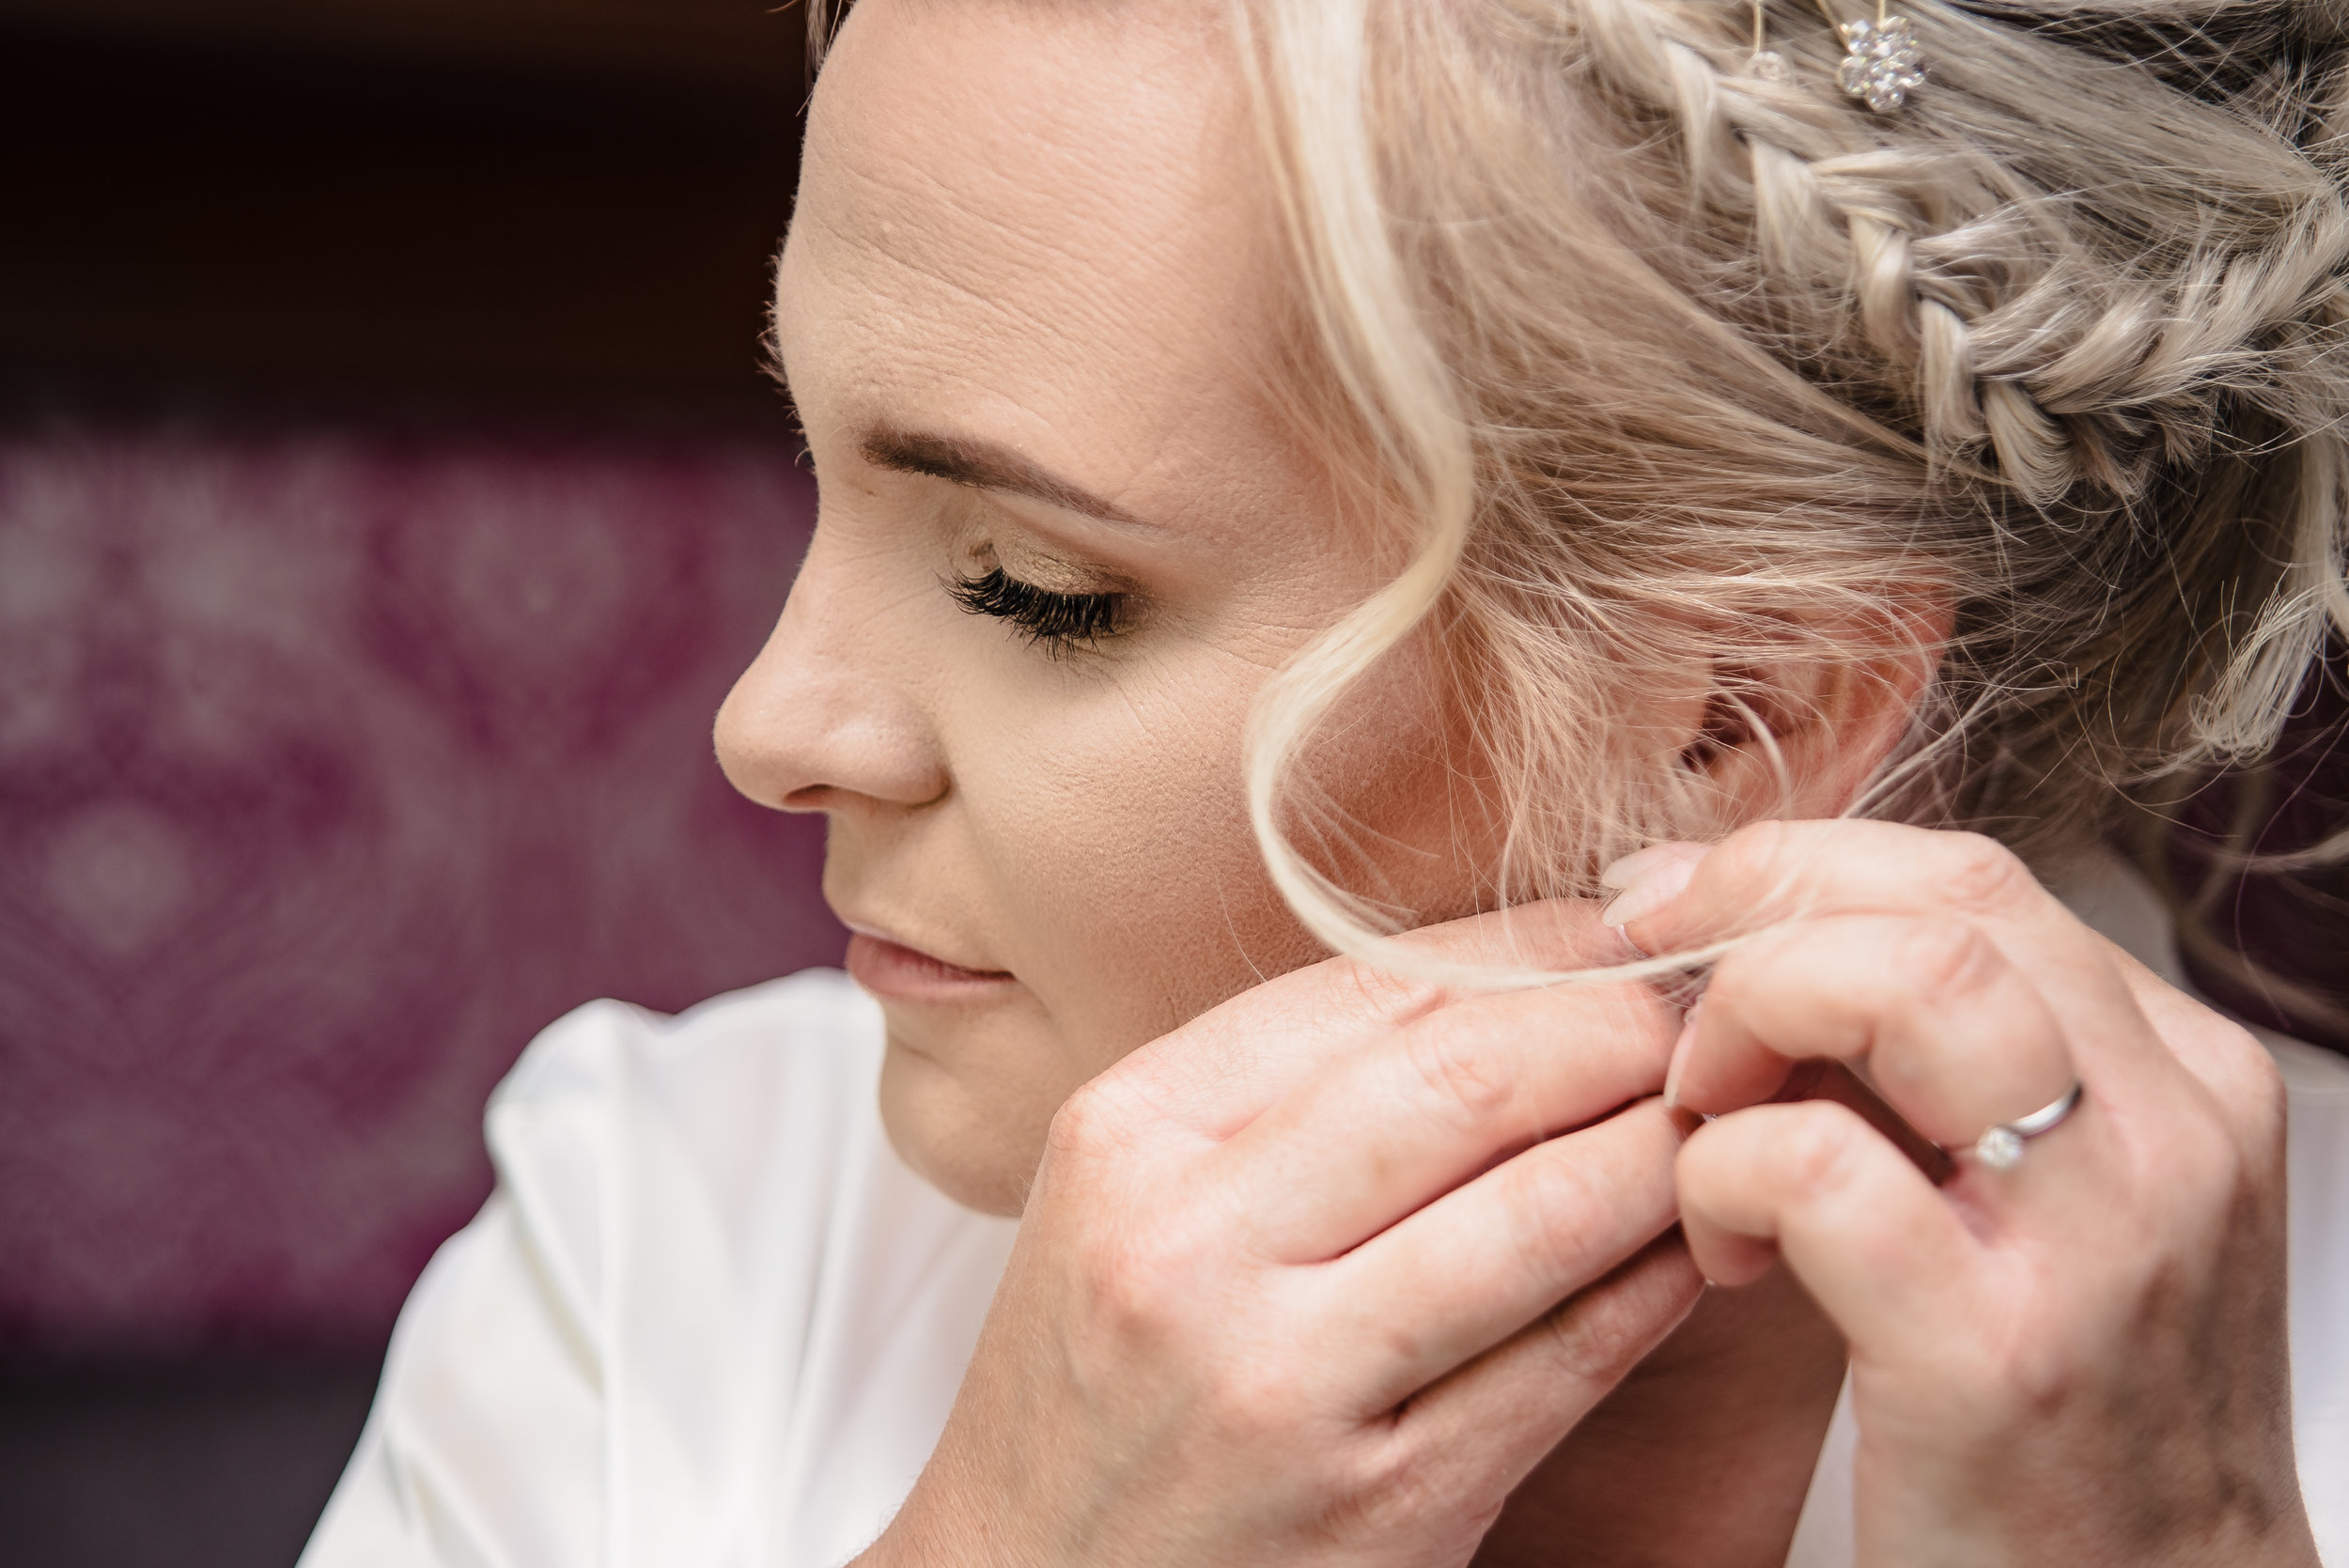 Wedding Preparation Gallery - There are so many beautiful moments prior to a wedding, from the anticipation for the bride and her closest friends and family, to all the crazy antics of the groom and his groomsmen